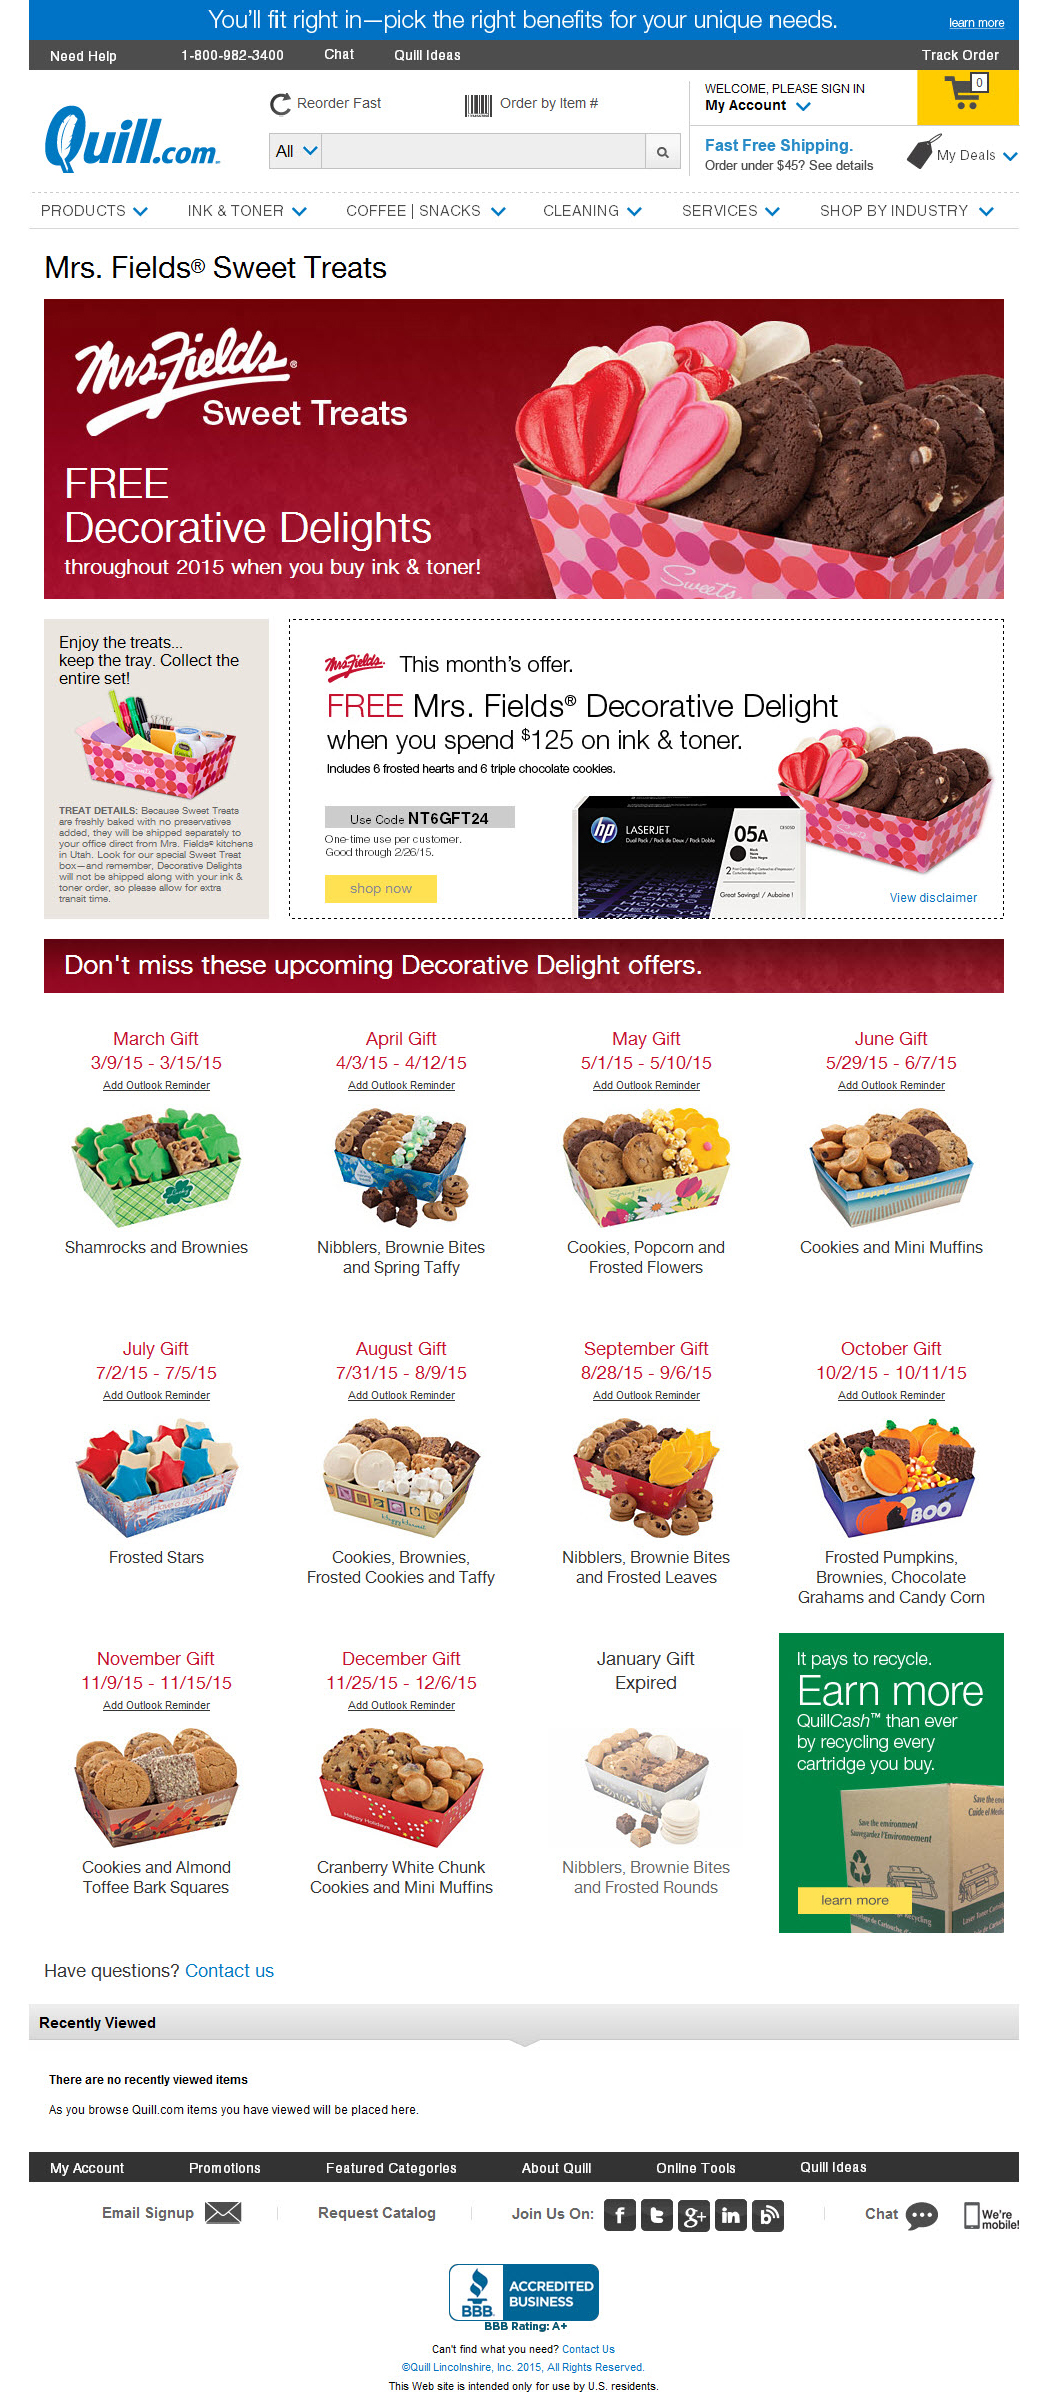 2015 Free Mrs. Fields® Sweet Treat with purchase campaign—Active Landing Page